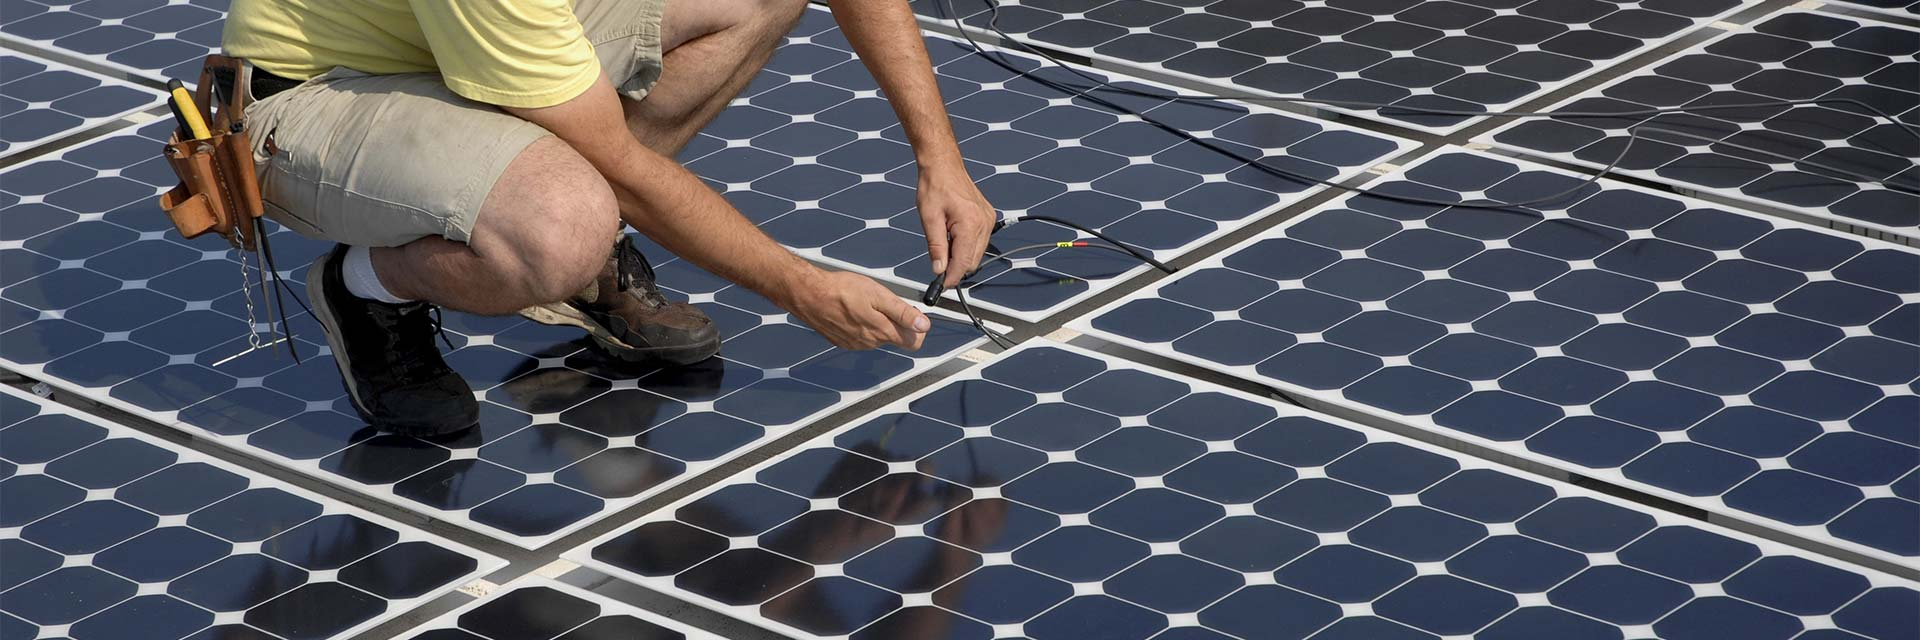 man installing solar electric panels